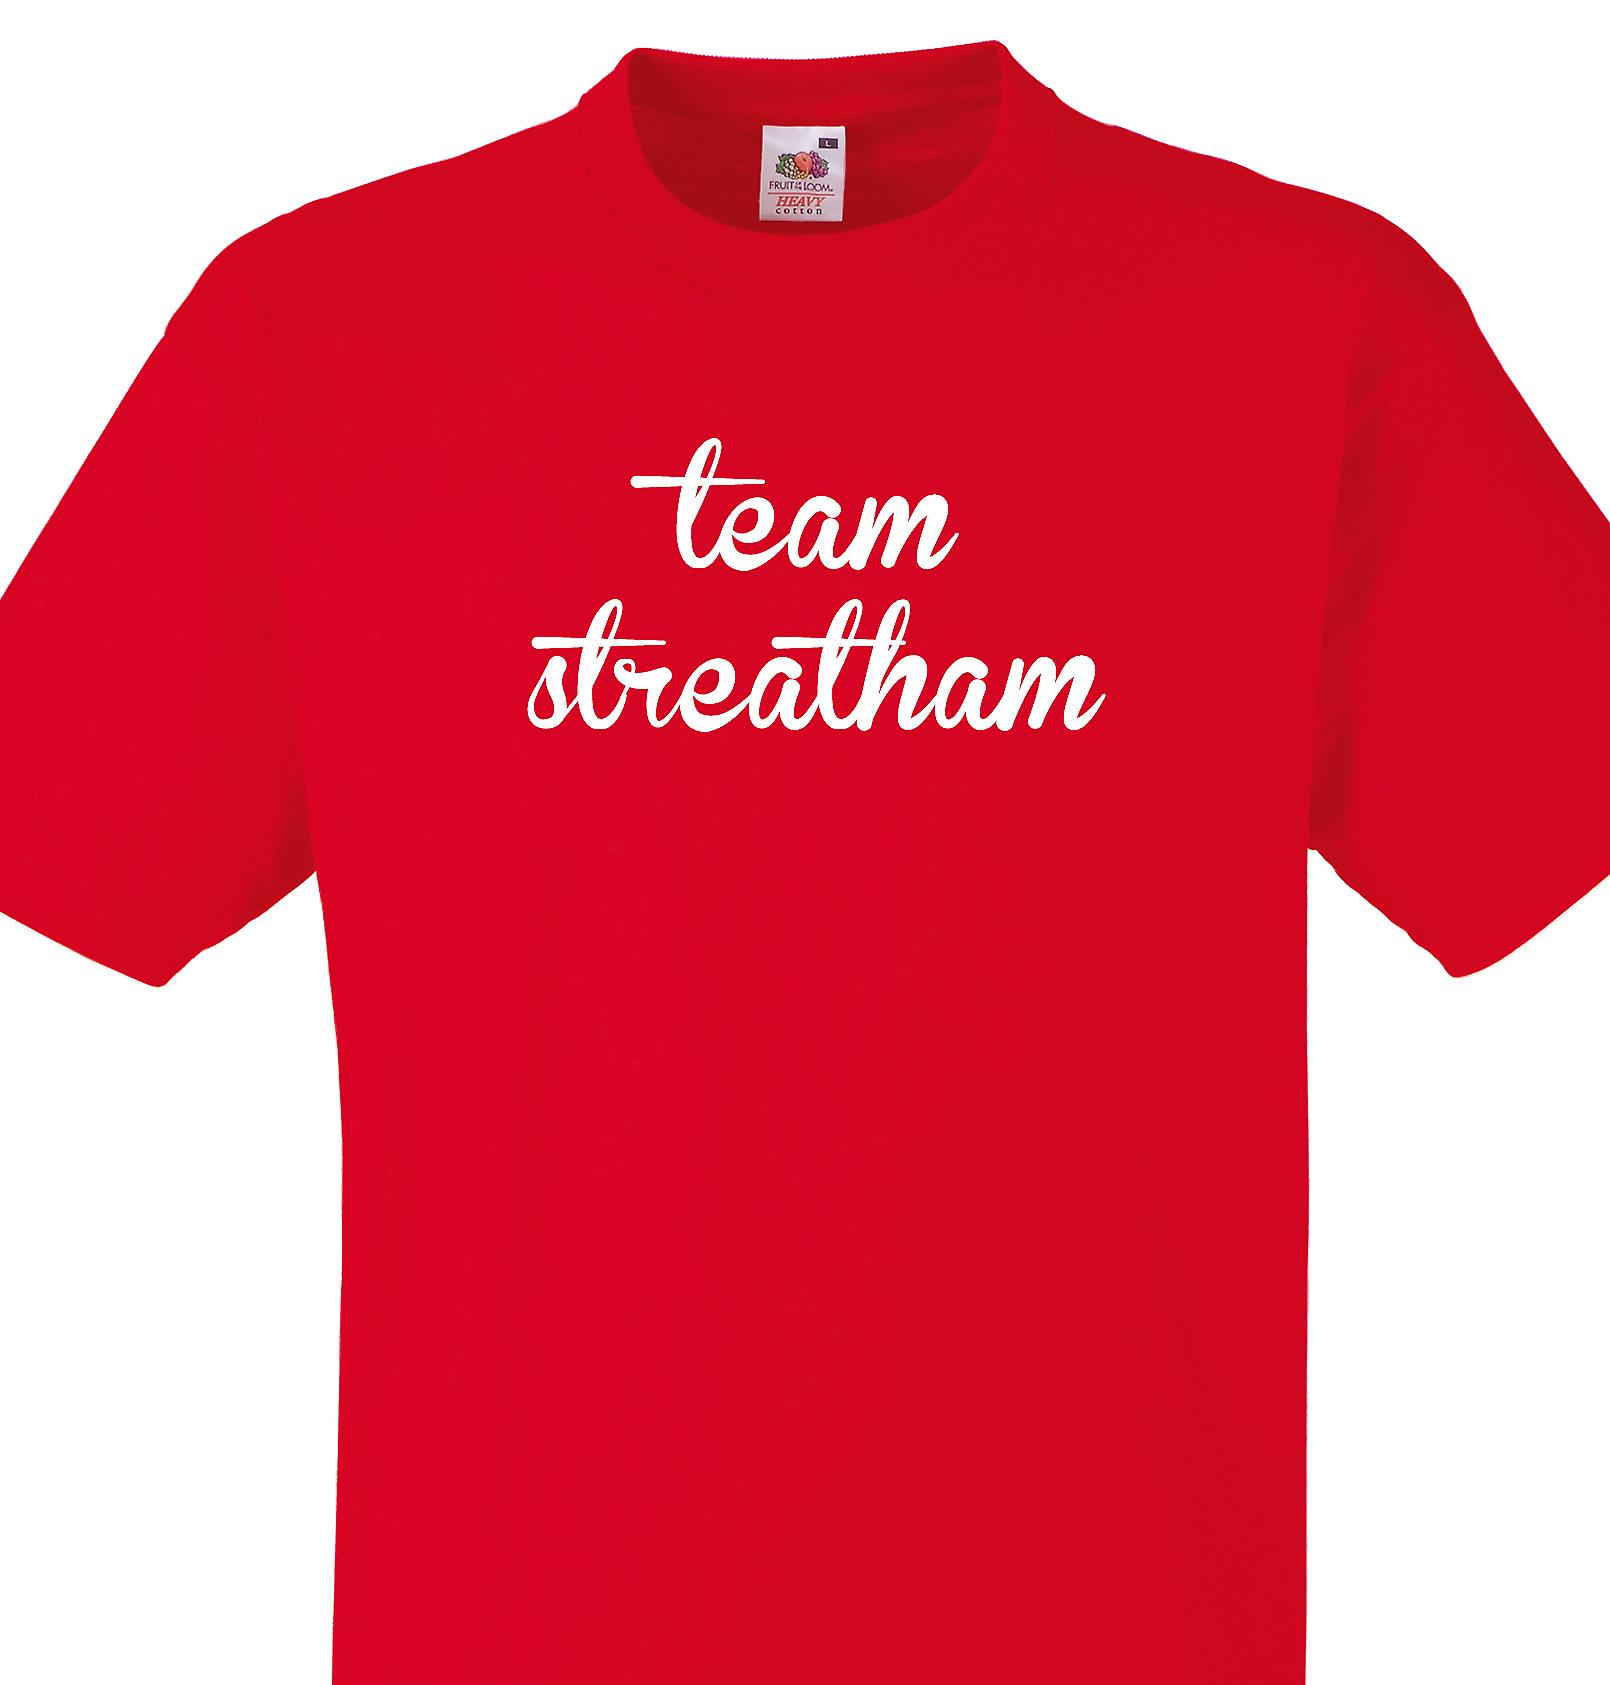 Team Streatham Red T shirt